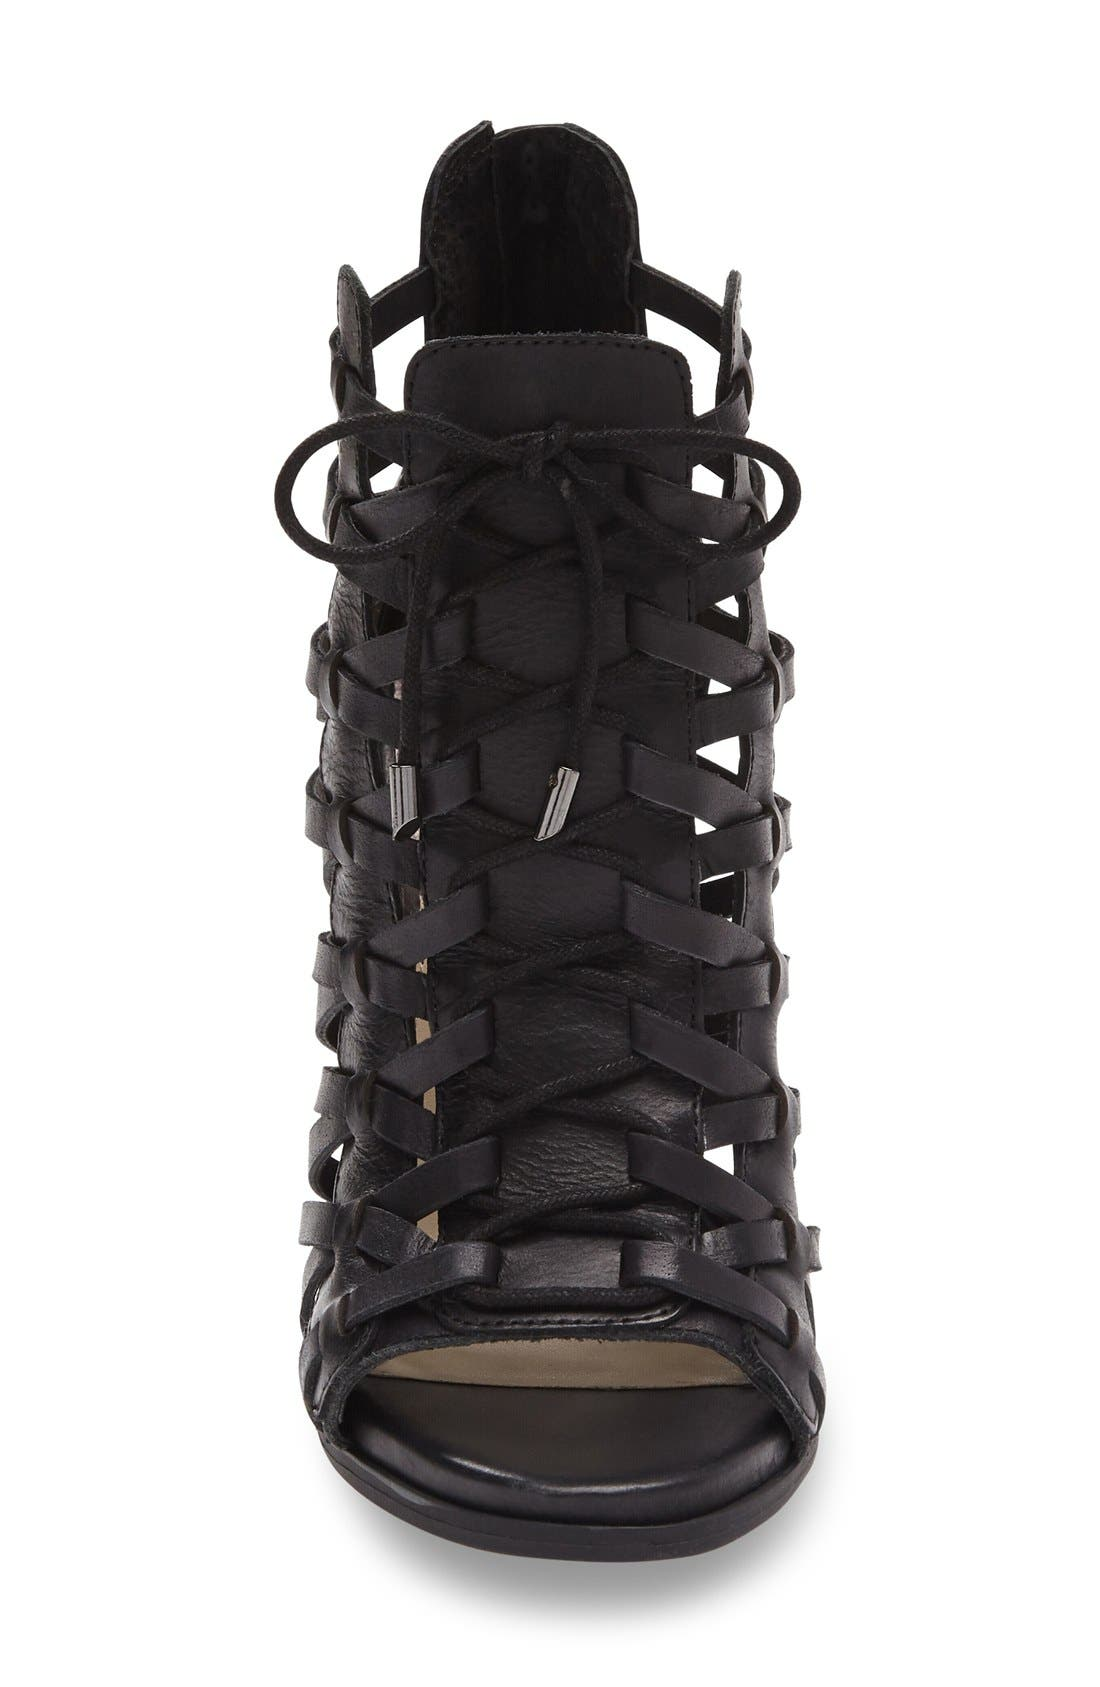 JESSICA SIMPSON,                             Riana Woven Leather Cage Sandal,                             Alternate thumbnail 6, color,                             001